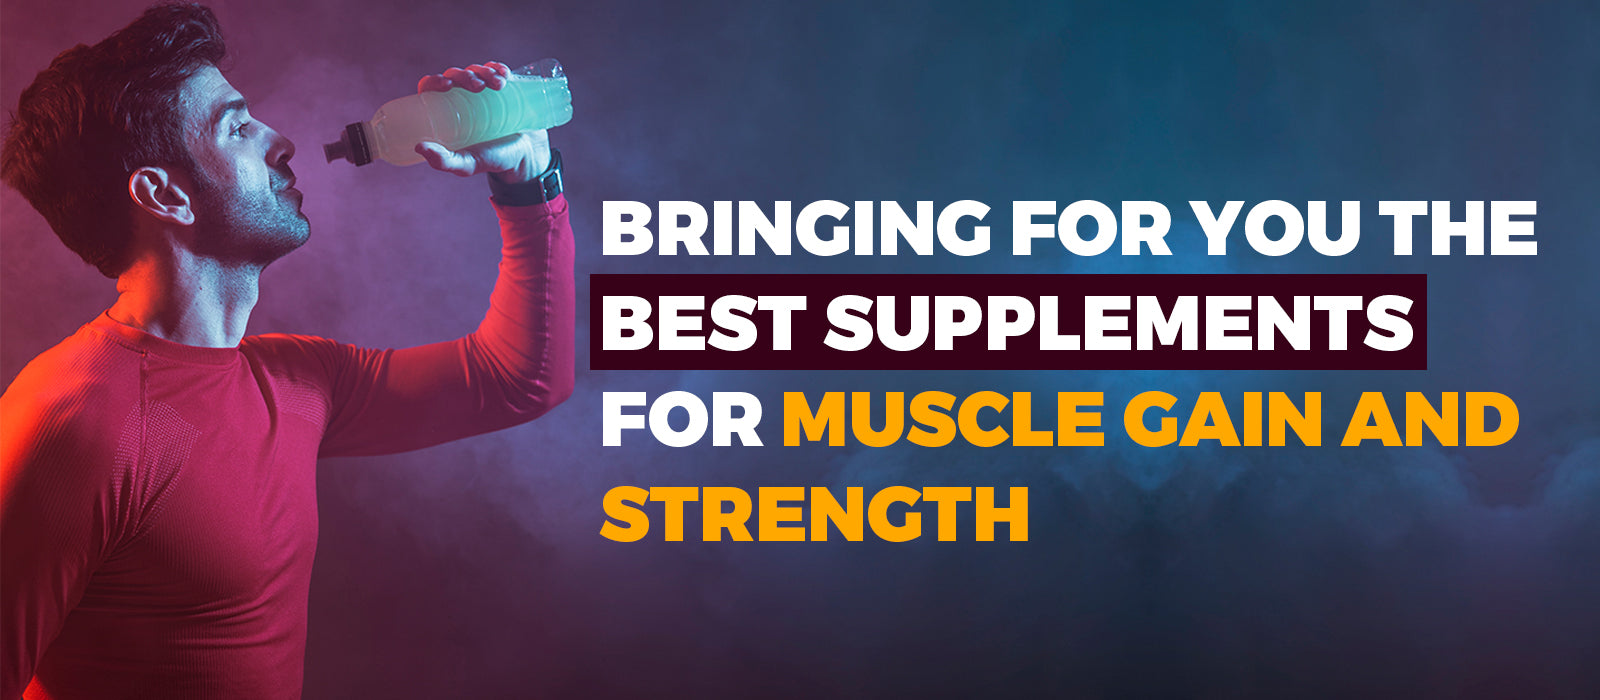 Bringing For You The Best Supplements For Muscle Gain and Strength